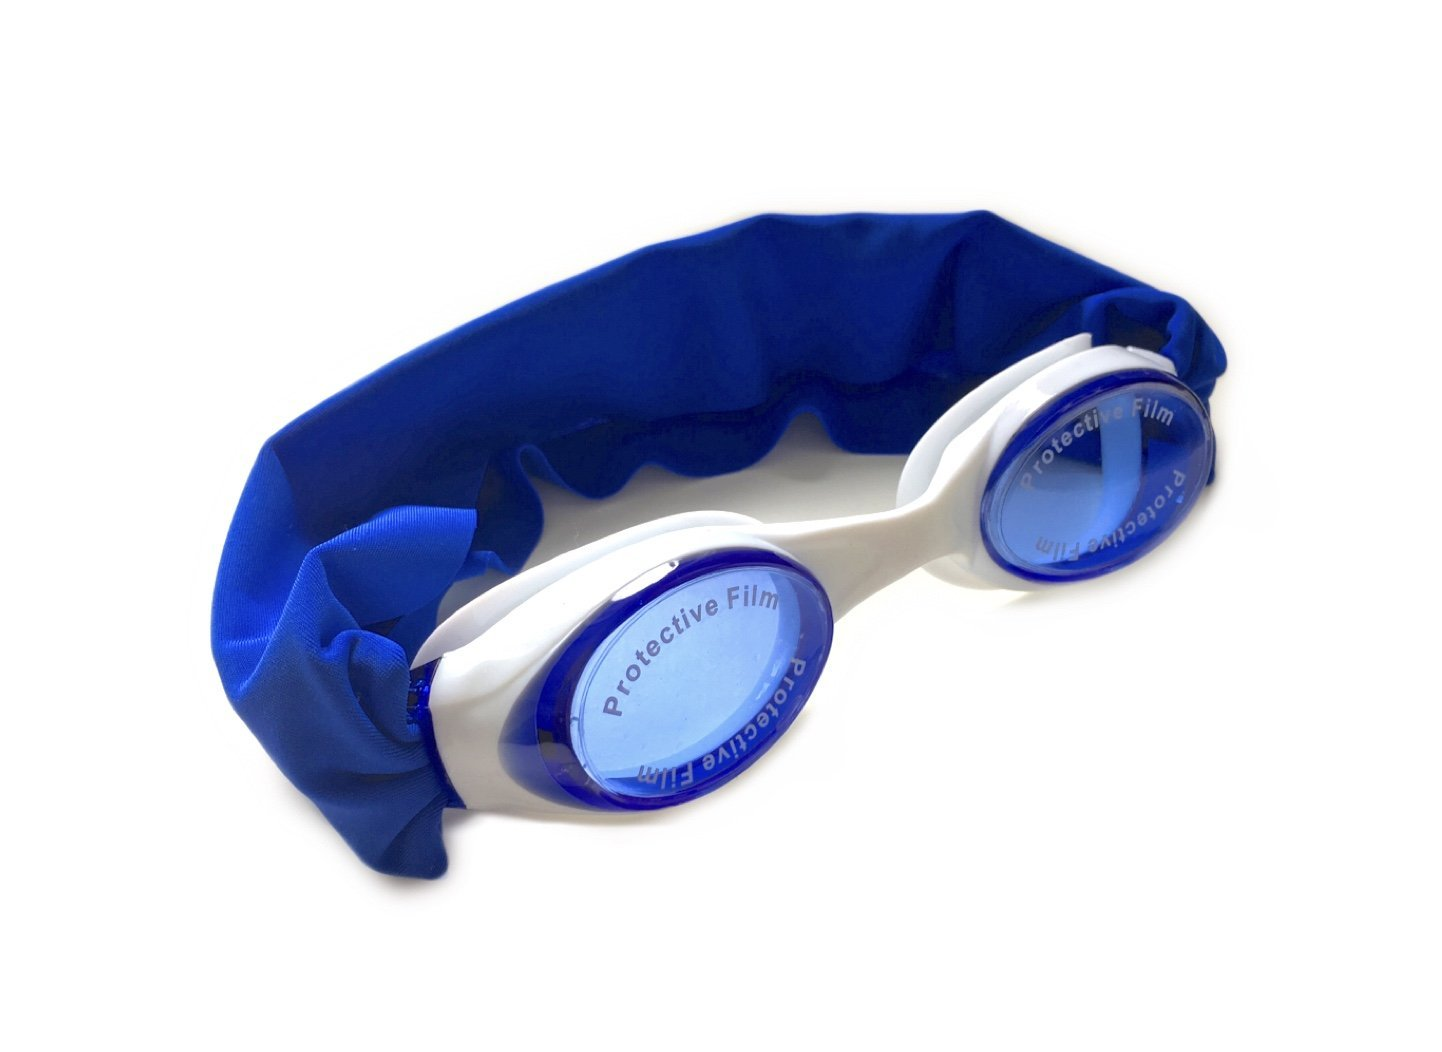 "SPLASH ""ROYAL"" Swim Goggles - Fun Fashionable Comfortable - Fits Kids & Adults - Won't Pull Your Hair - Easy to Use - High Visibility Anti-Fog Lenses - PATENT PENDING"